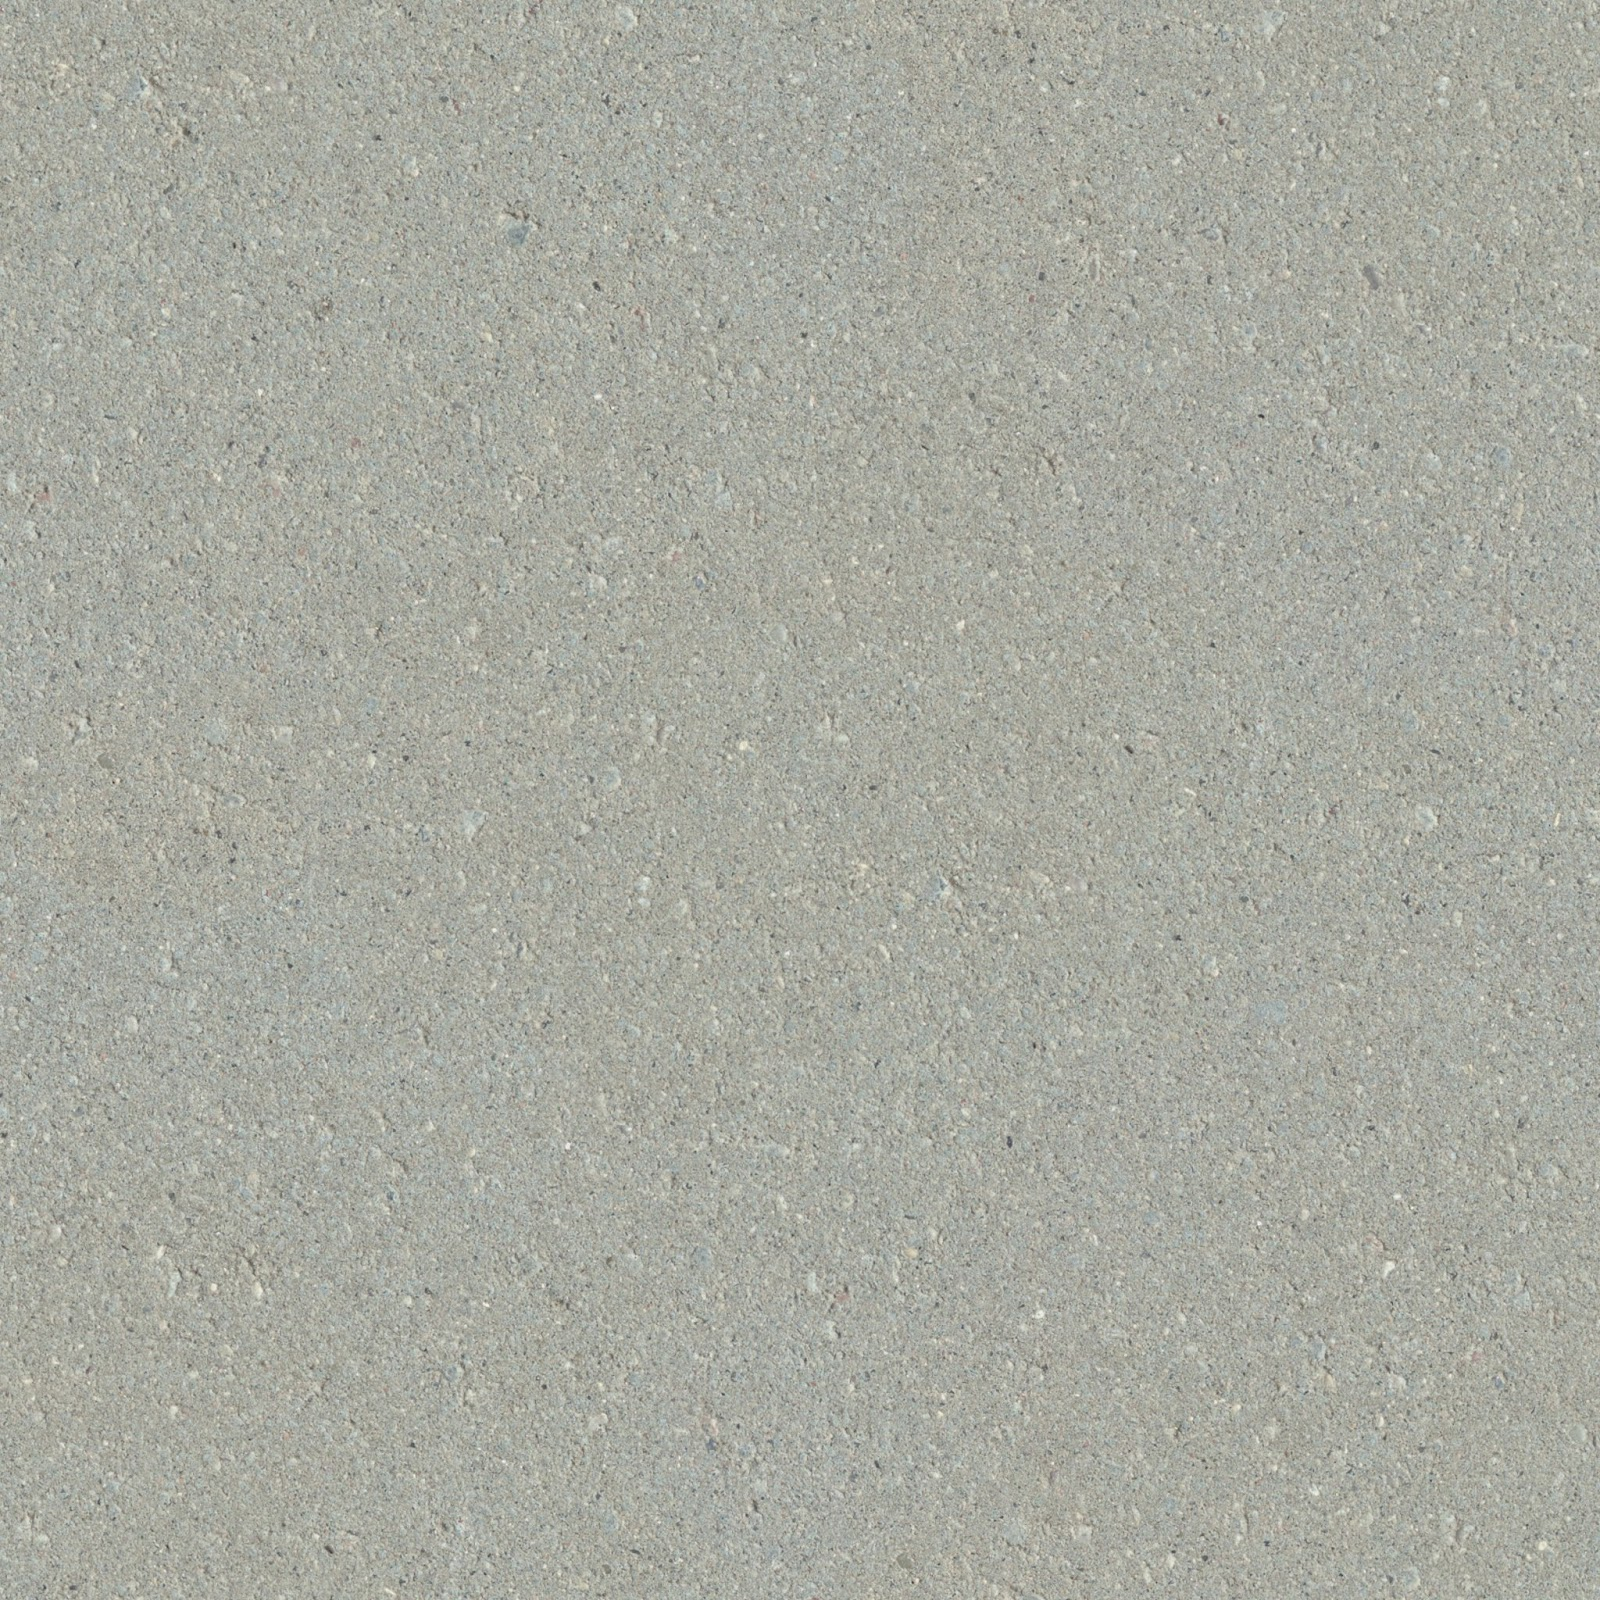 (CONCRETE 12) floor tile granite dirt pillar seamless texture